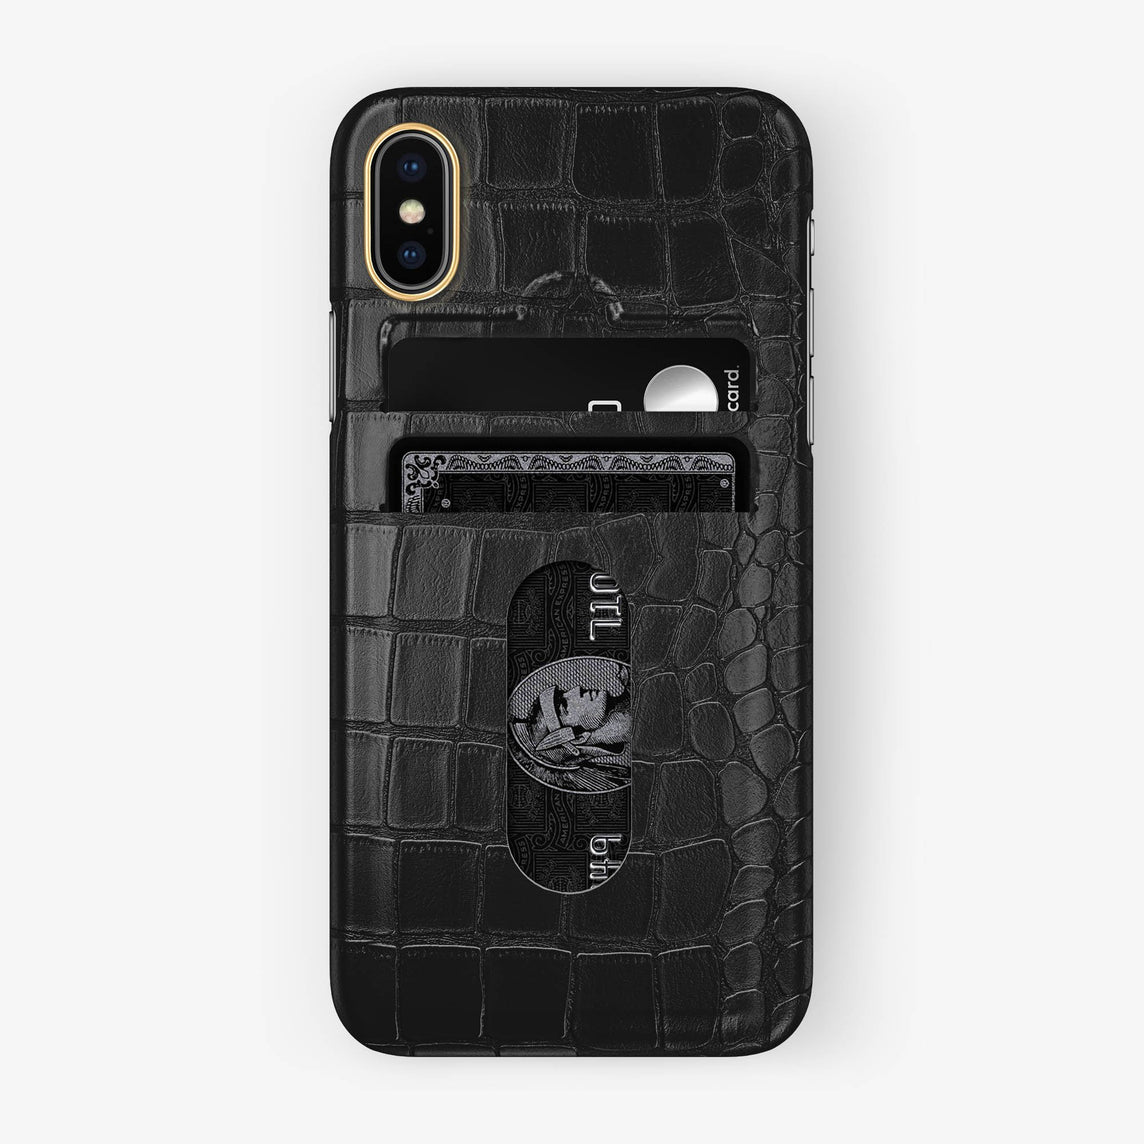 Alligator Card Holder Case iPhone X/Xs | Black - Yellow Gold - Hadoro